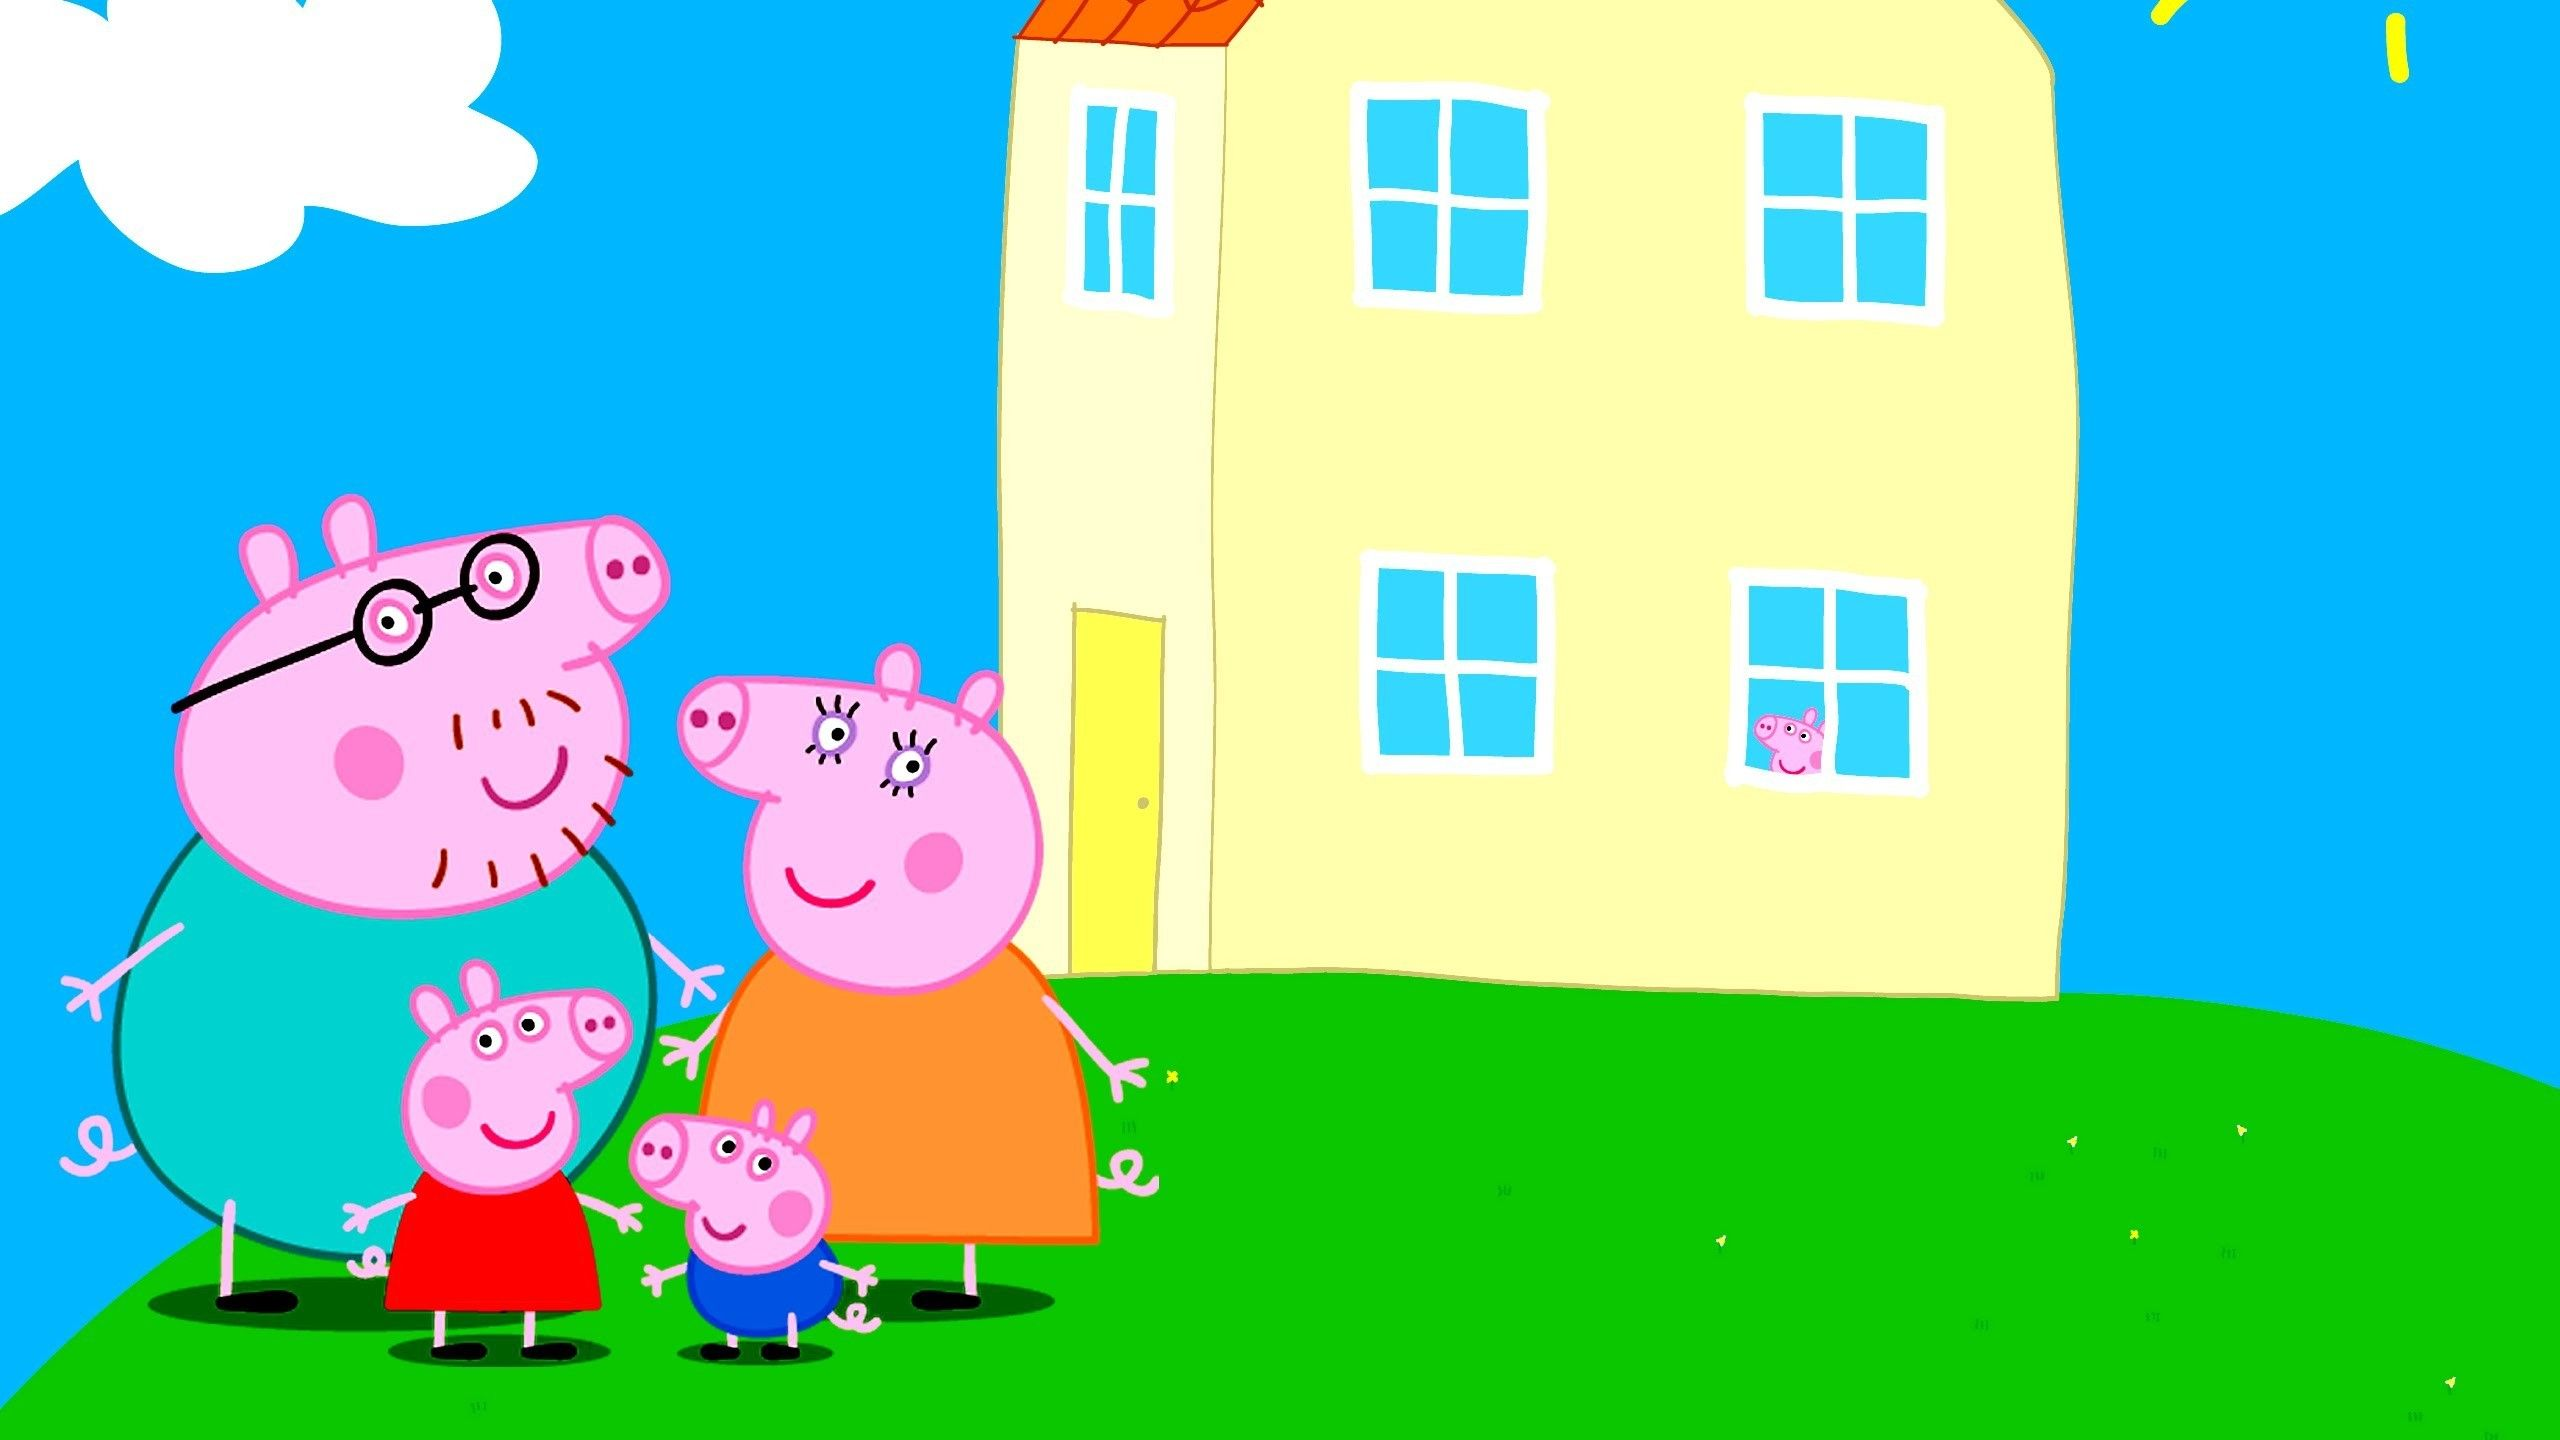 Peppa Pig Backgrounds 96 Wallpapers HD Wallpapers Peppa pig